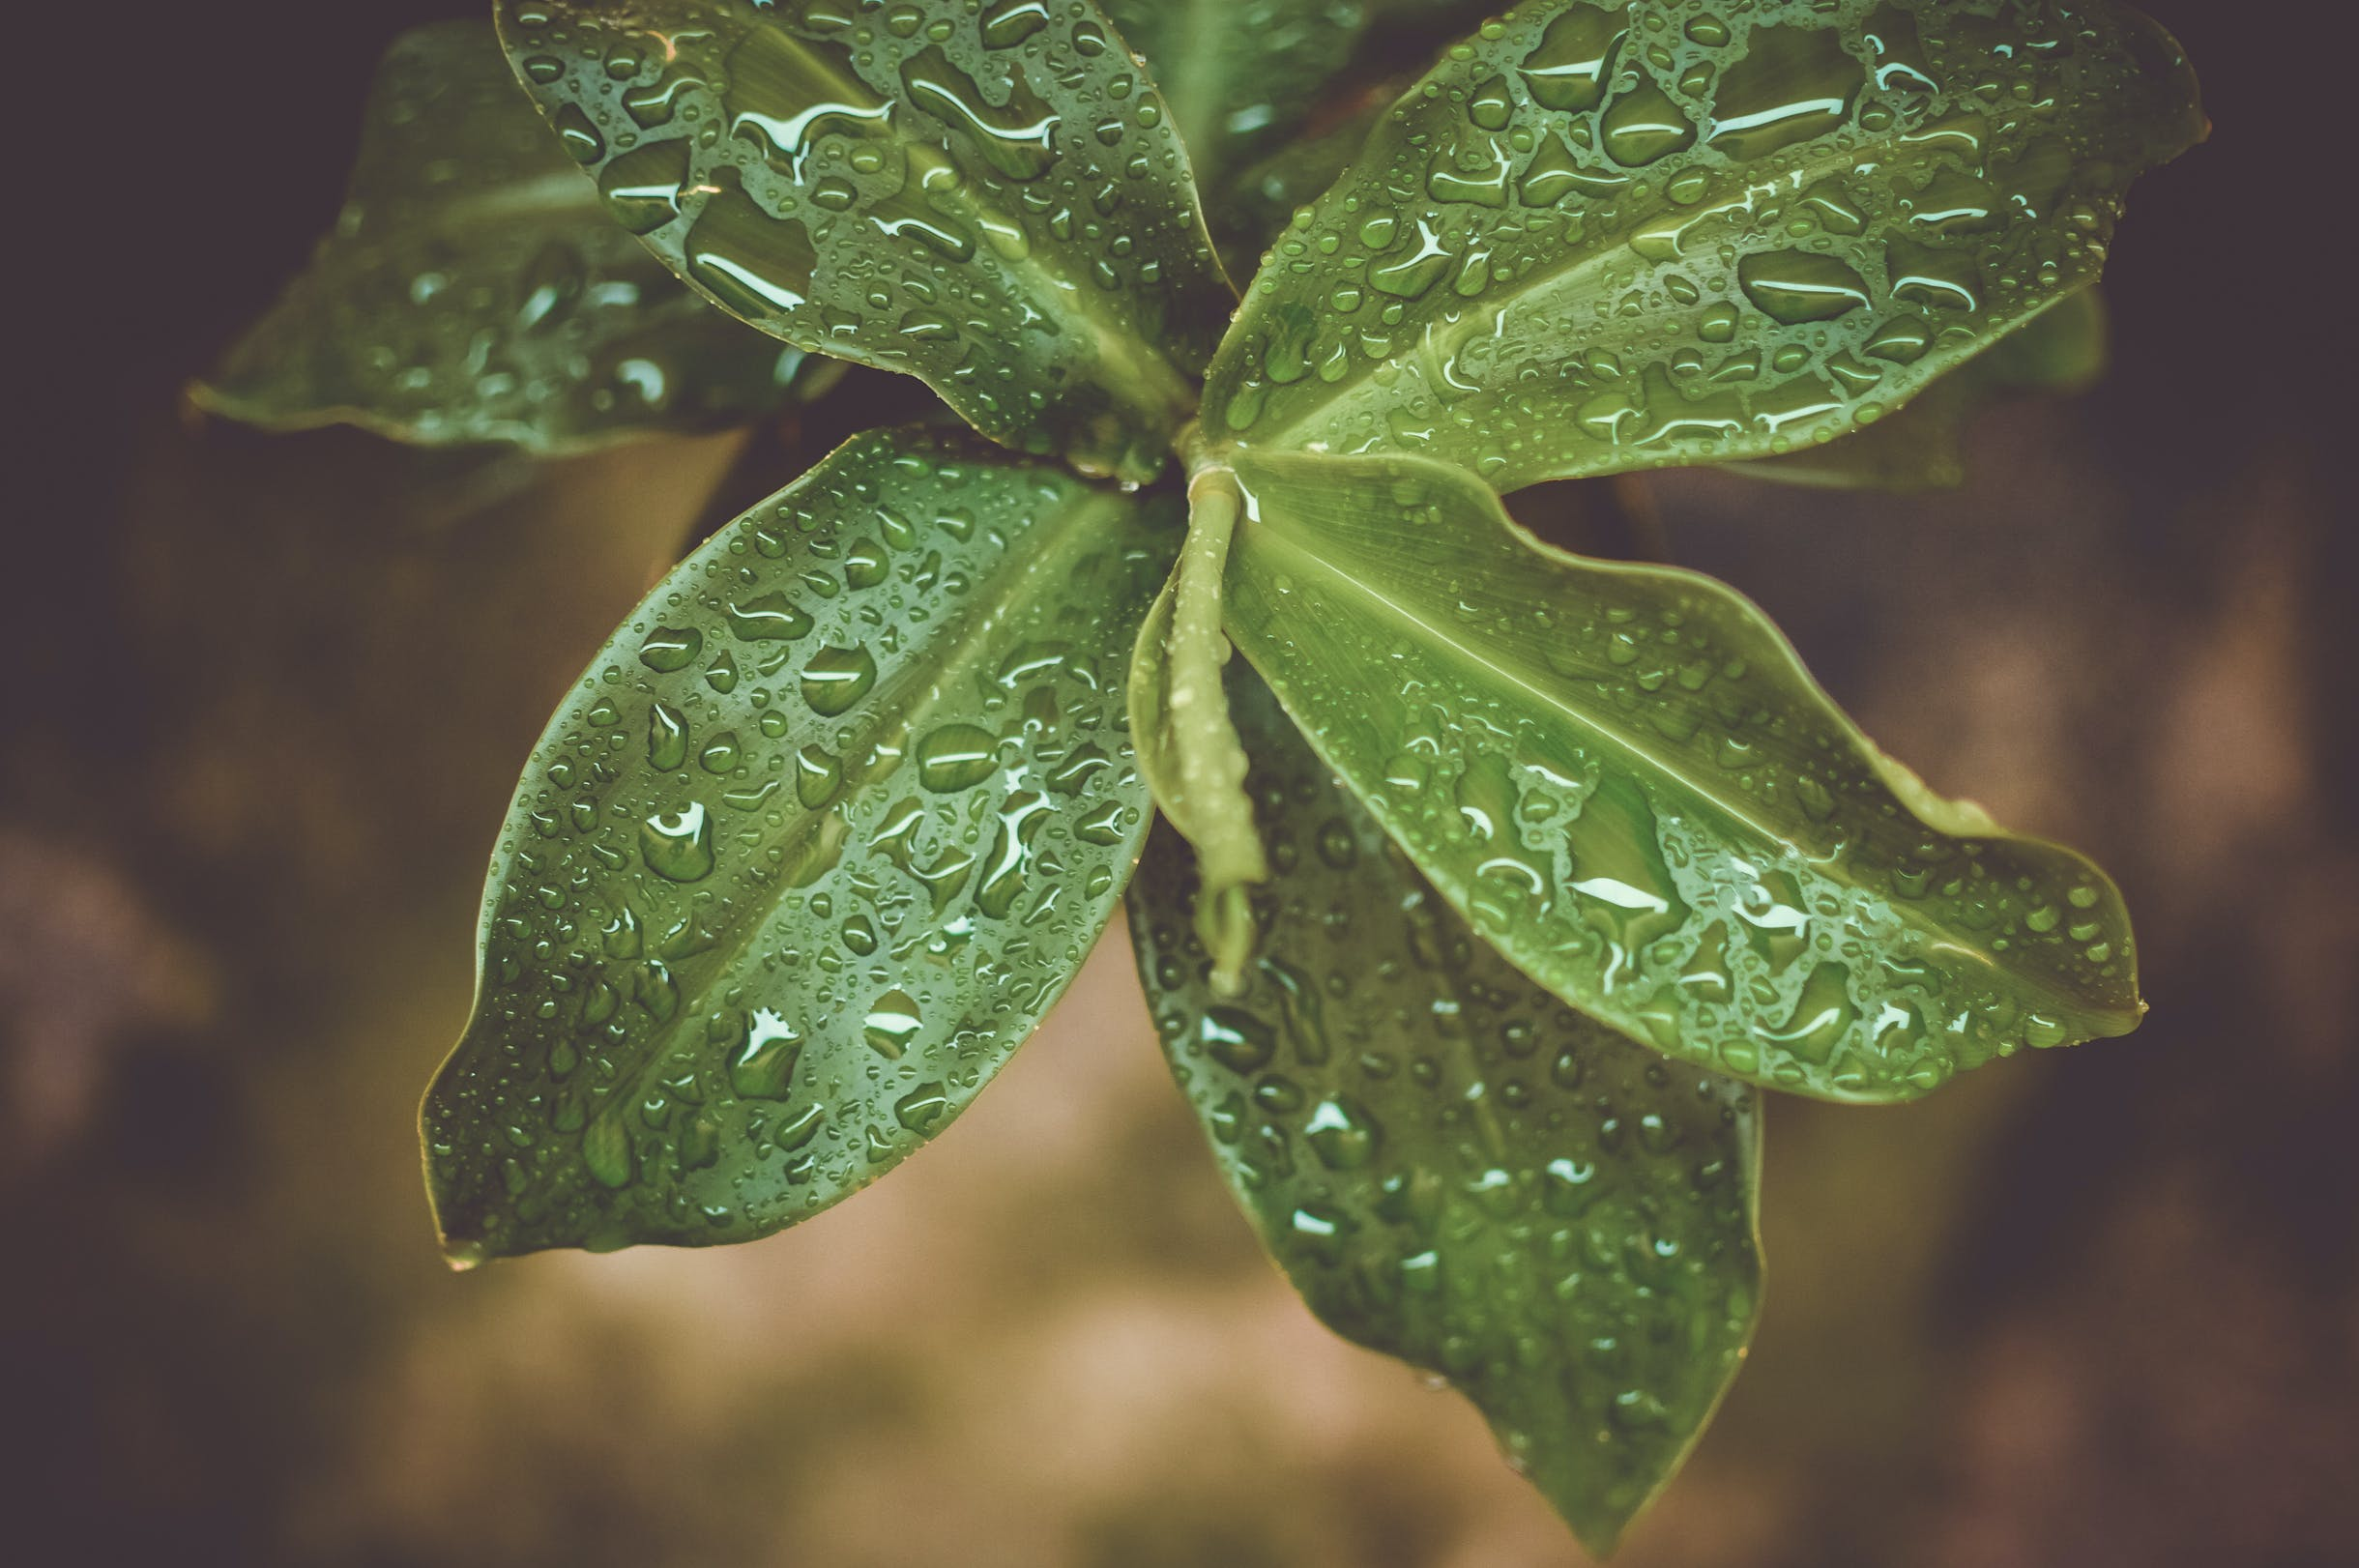 Microshot Photography on Green Plant